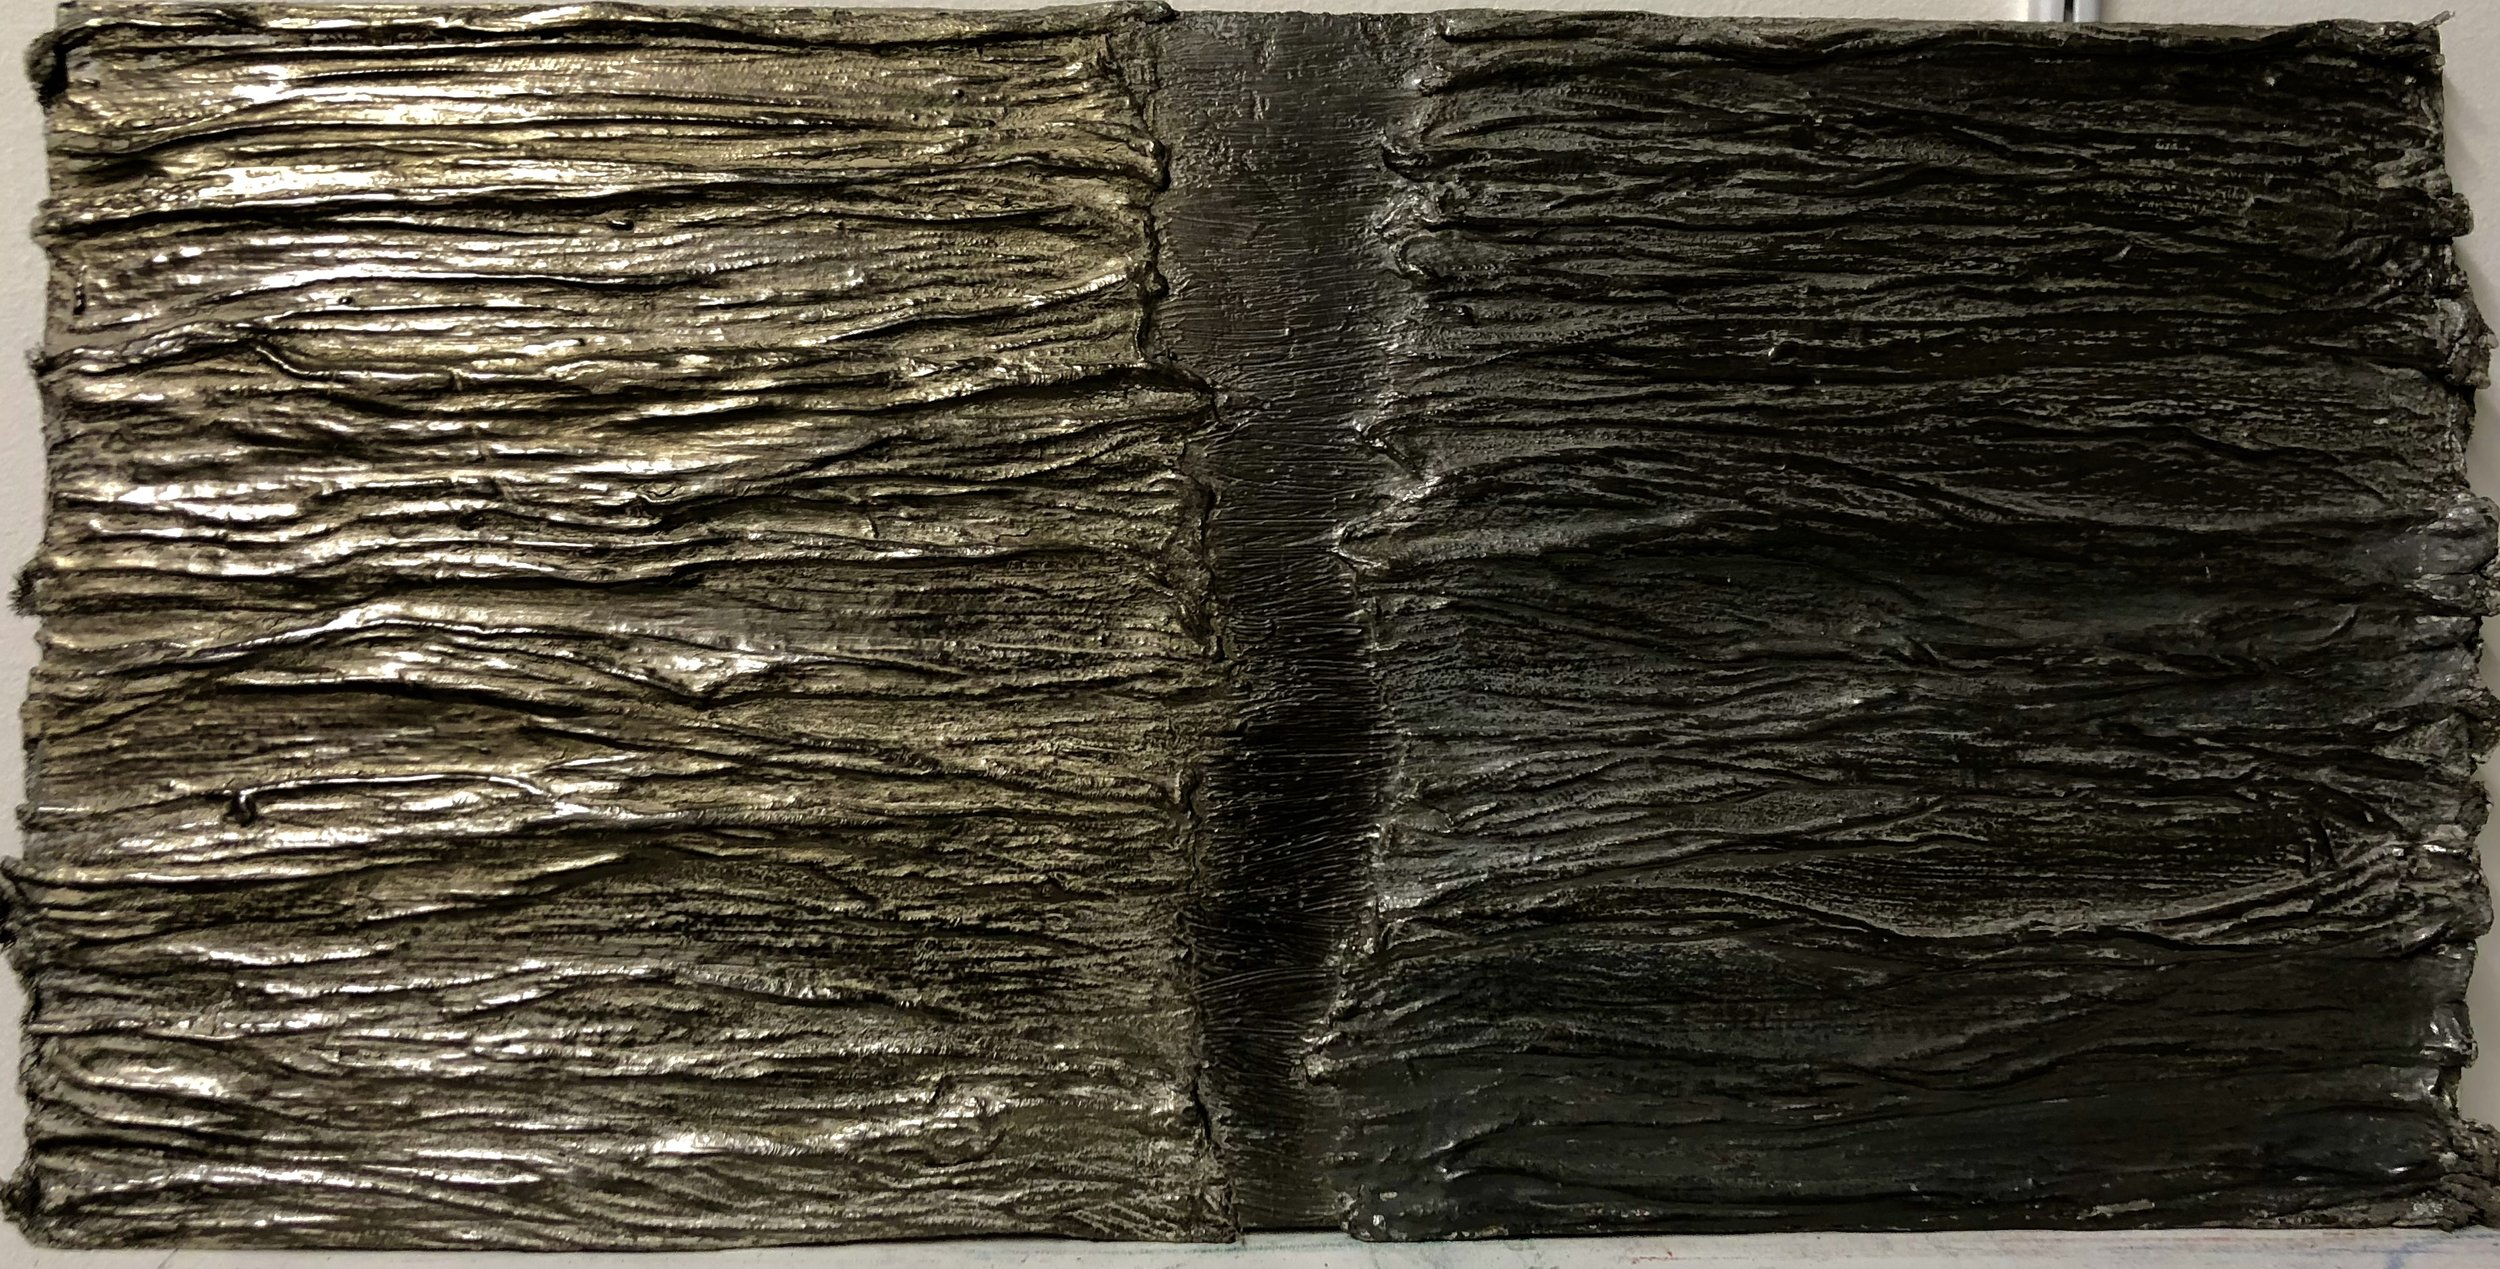 Rebecca Spivack   Untitled 2   2016  Mixed media construction (integrated colored plaster, graphite, cloth)  12 x 24 1/2 inches